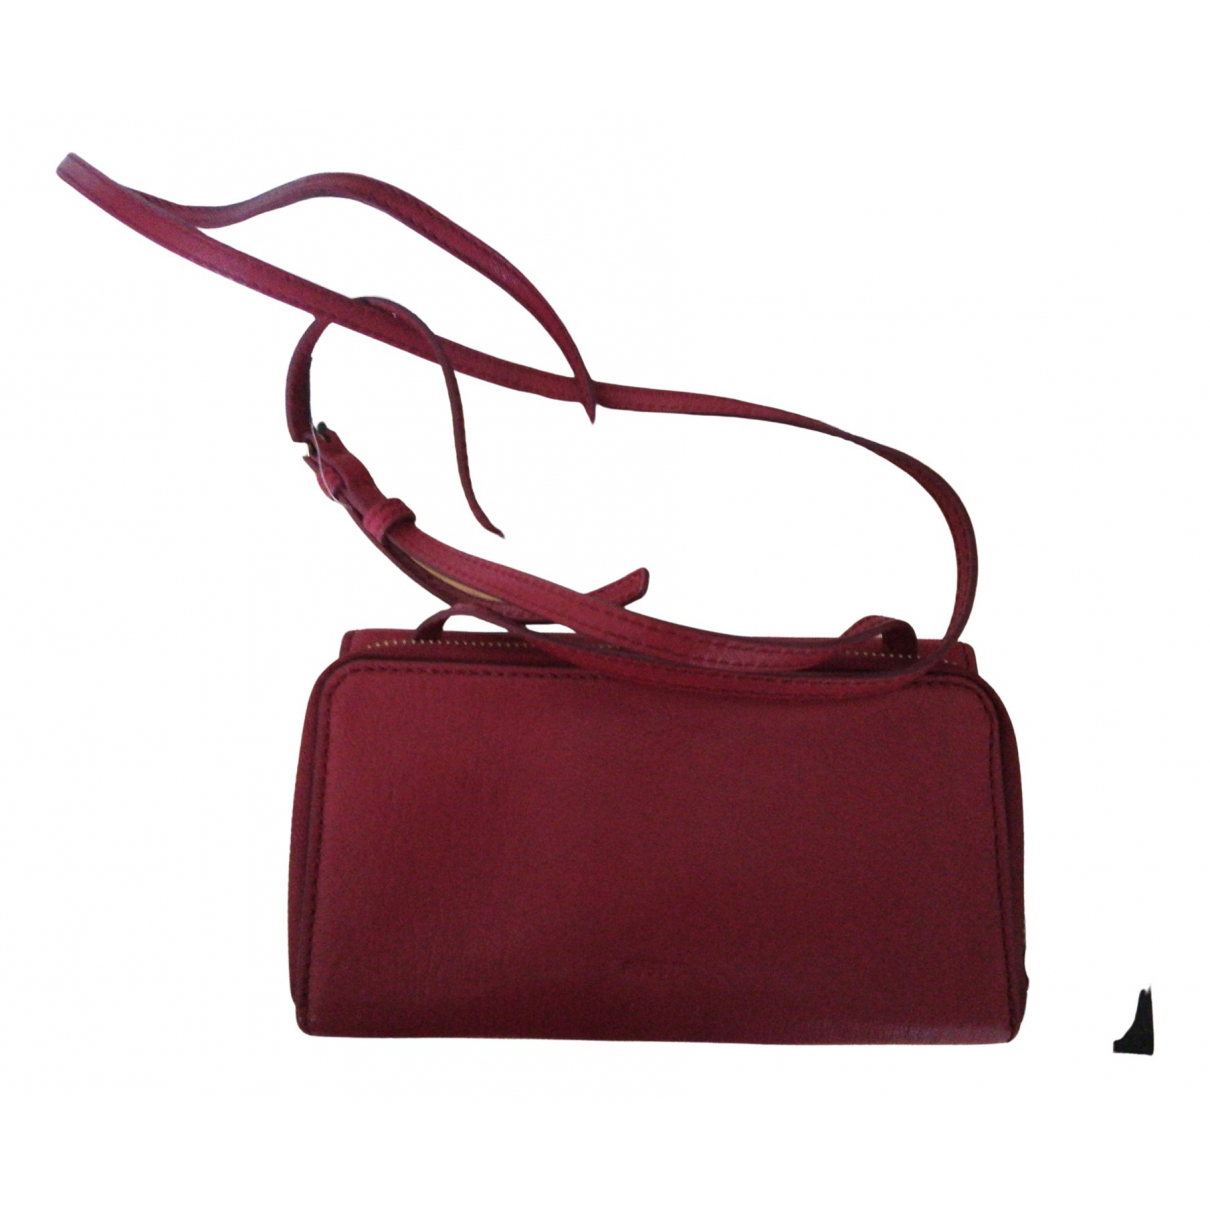 Fossil N Red Leather Clutch bag for Women N